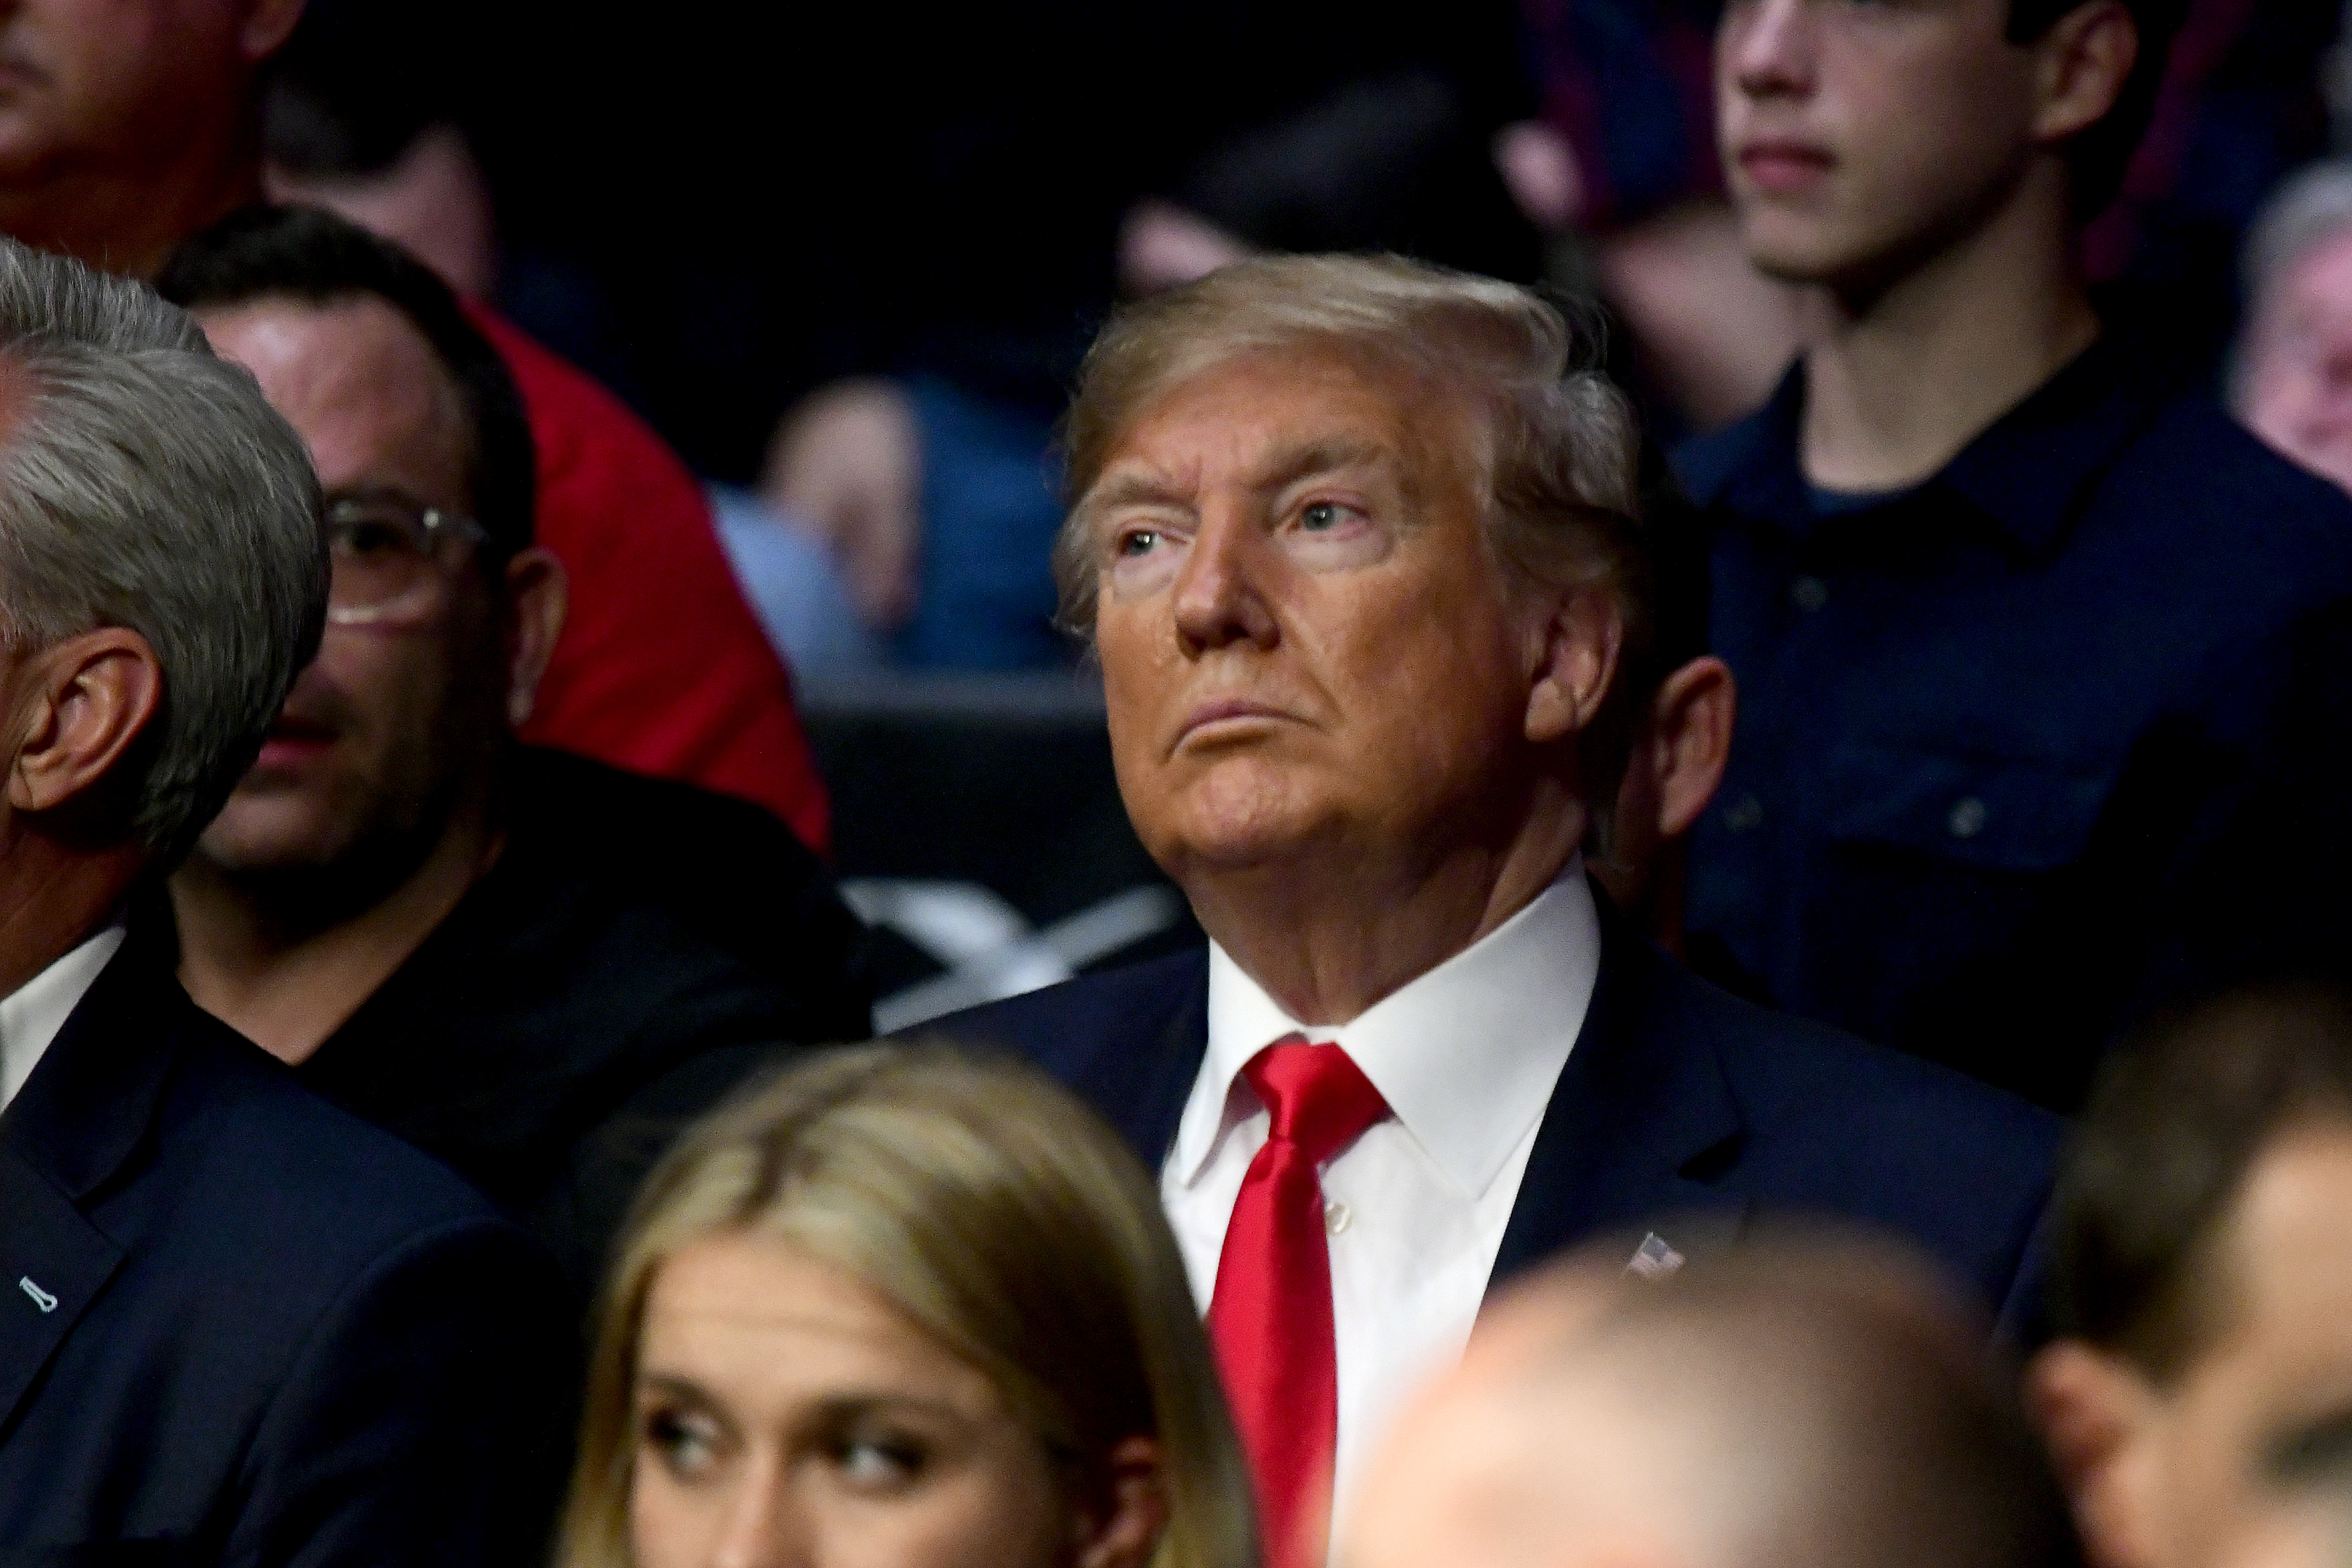 U.S. President Donald Trump attends UFC 244 at Madison Square Garden on November 02, 2019 in New York City. (Photo by Steven Ryan/Getty Images)